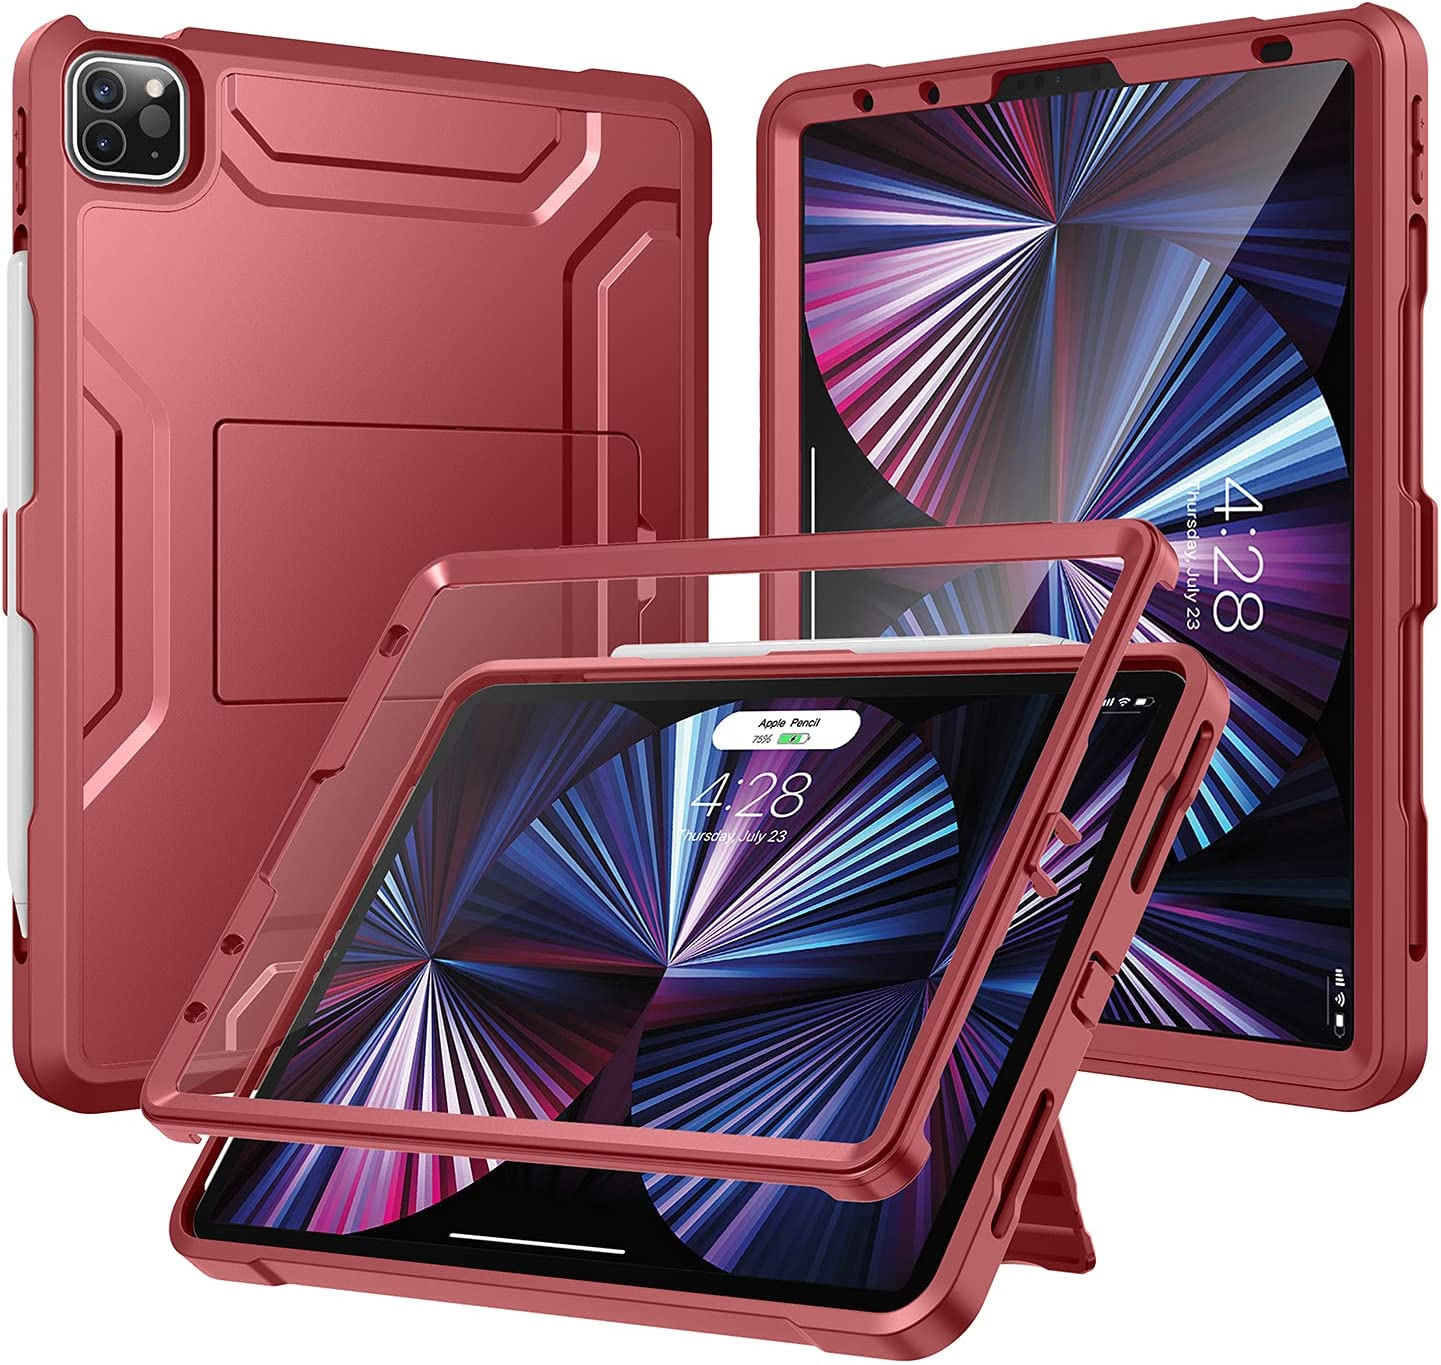 Soke Case for iPad Pro 11 2021 with Built-in Screen Protector - Support 2nd Apple Pencil Charging - Heavy Duty Rugged Protective Kickstand Case for iPad Pro 11 Inch 3rd Generation - Rose Red